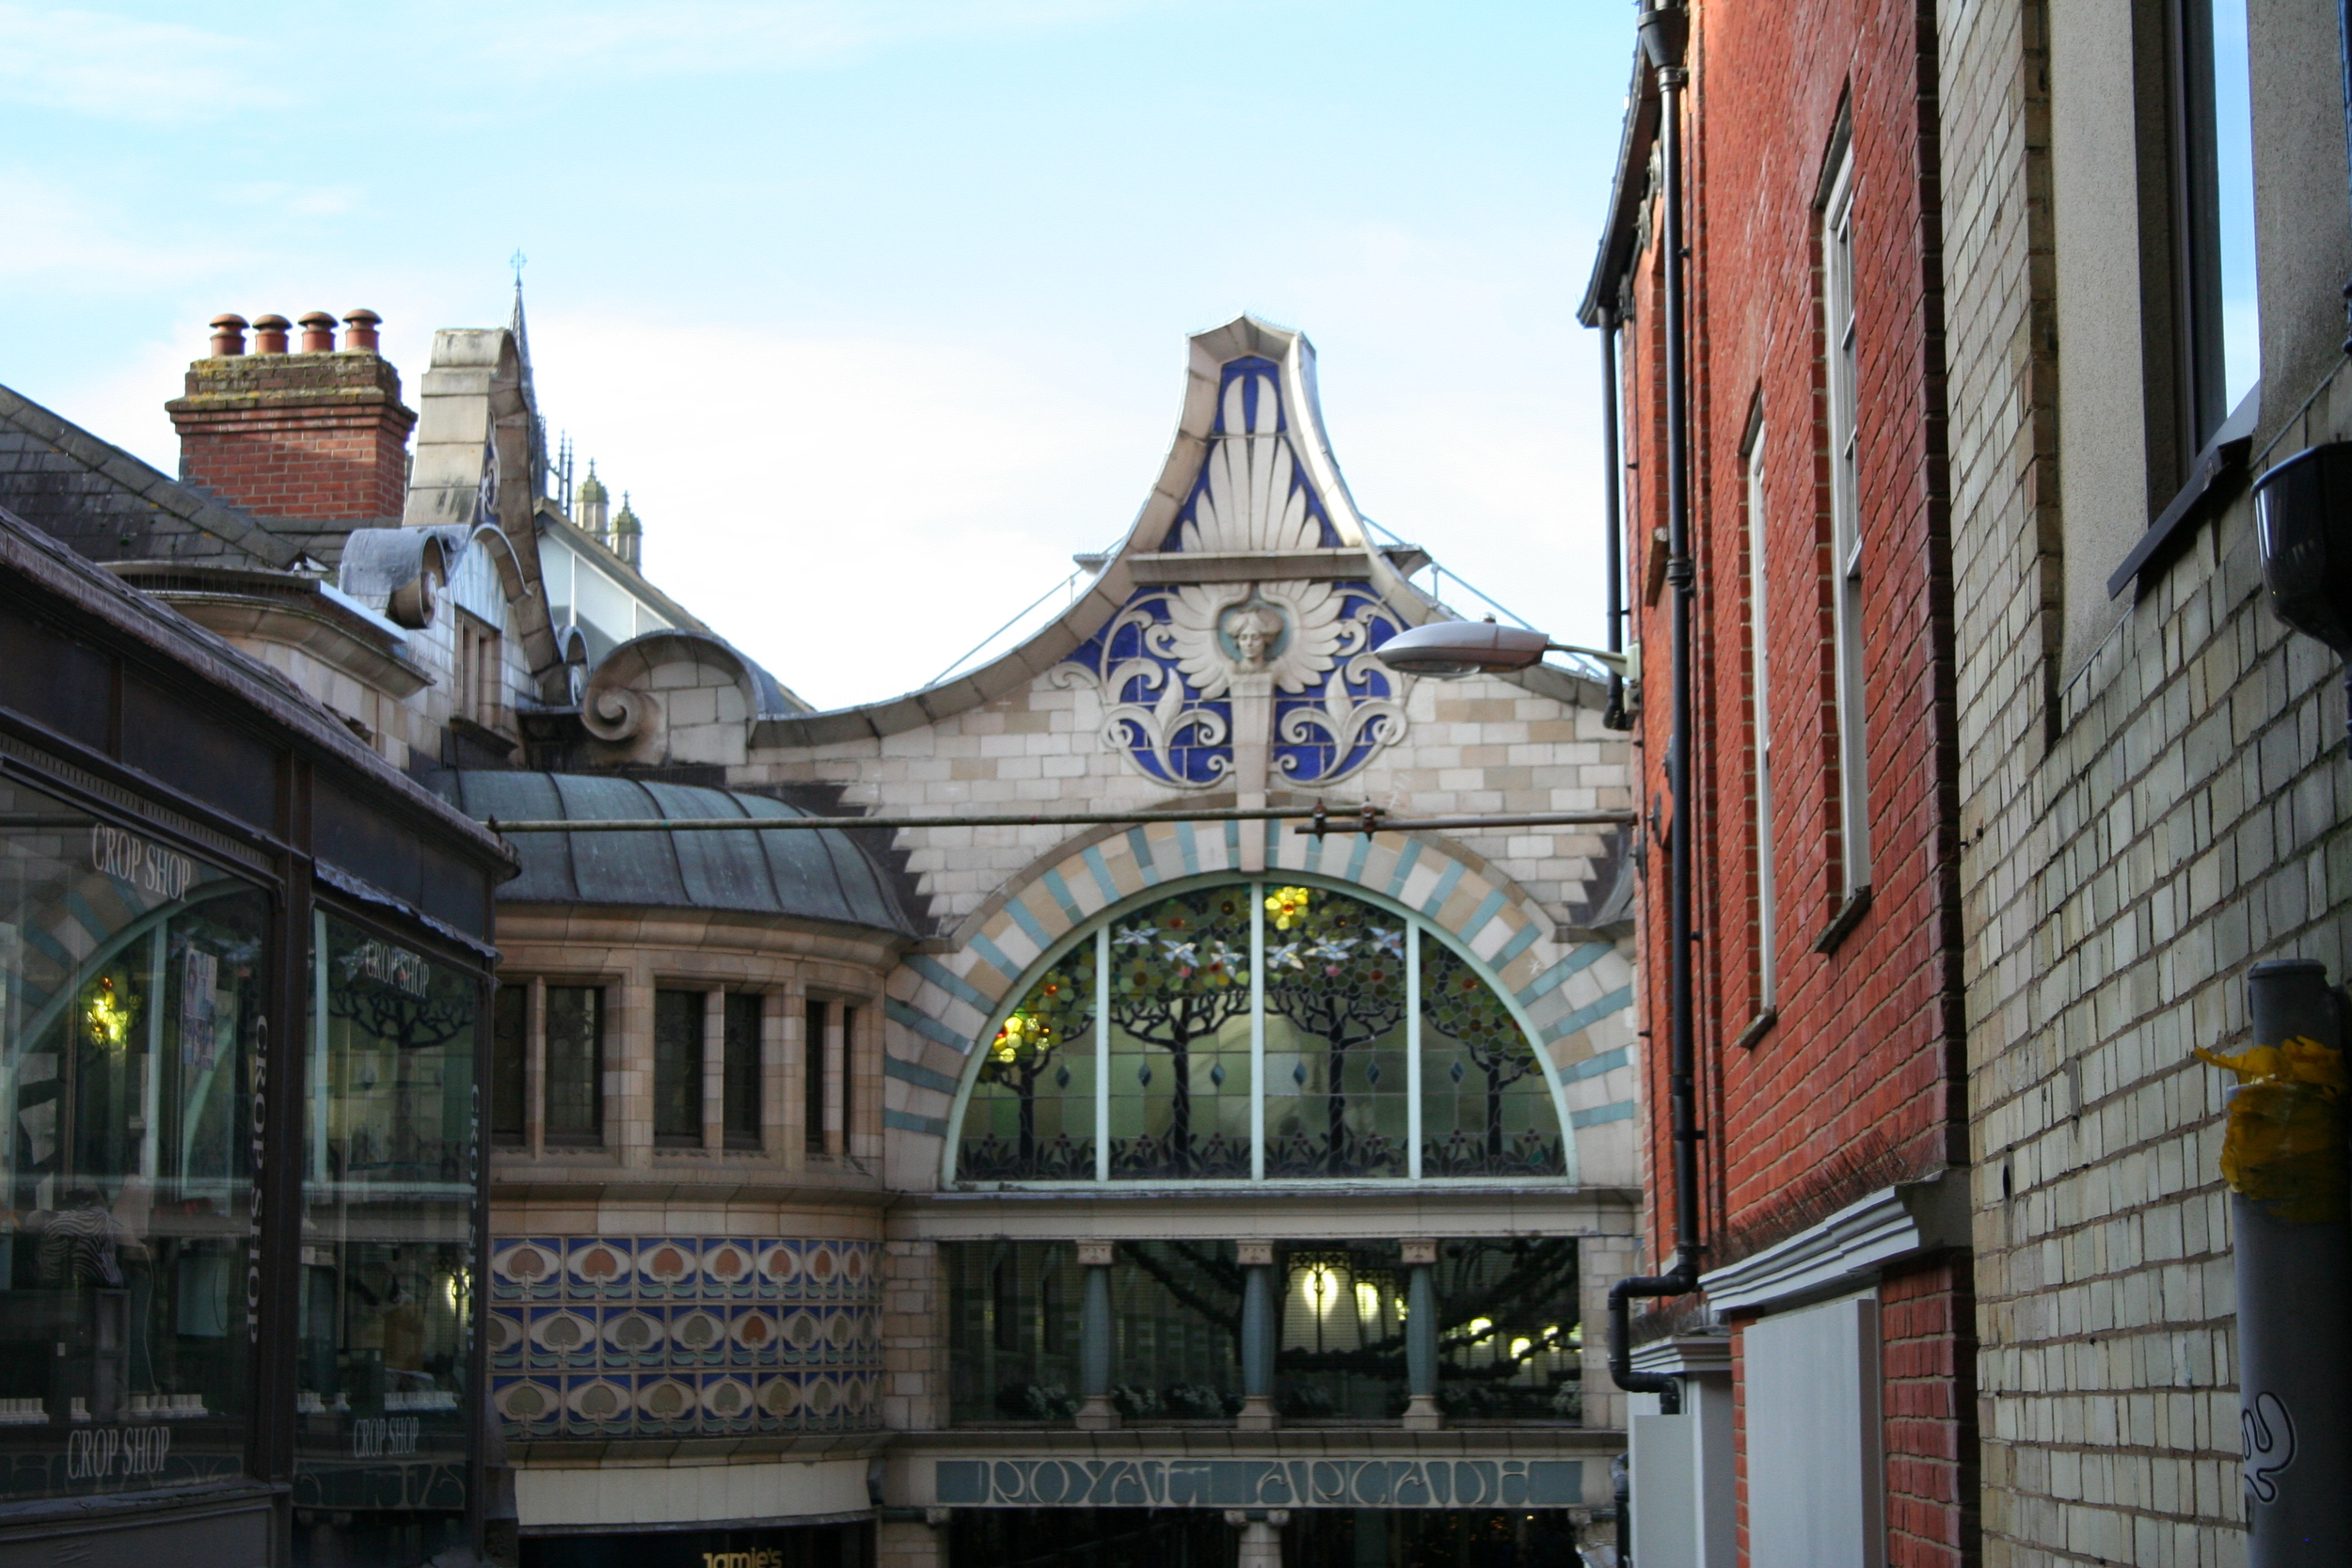 """The Royal Arcade in city center. The """"arcade"""" is filled with nice shops and restaurants and connects Norwich Market to Castle Mall, which lies underground beneath the castle."""